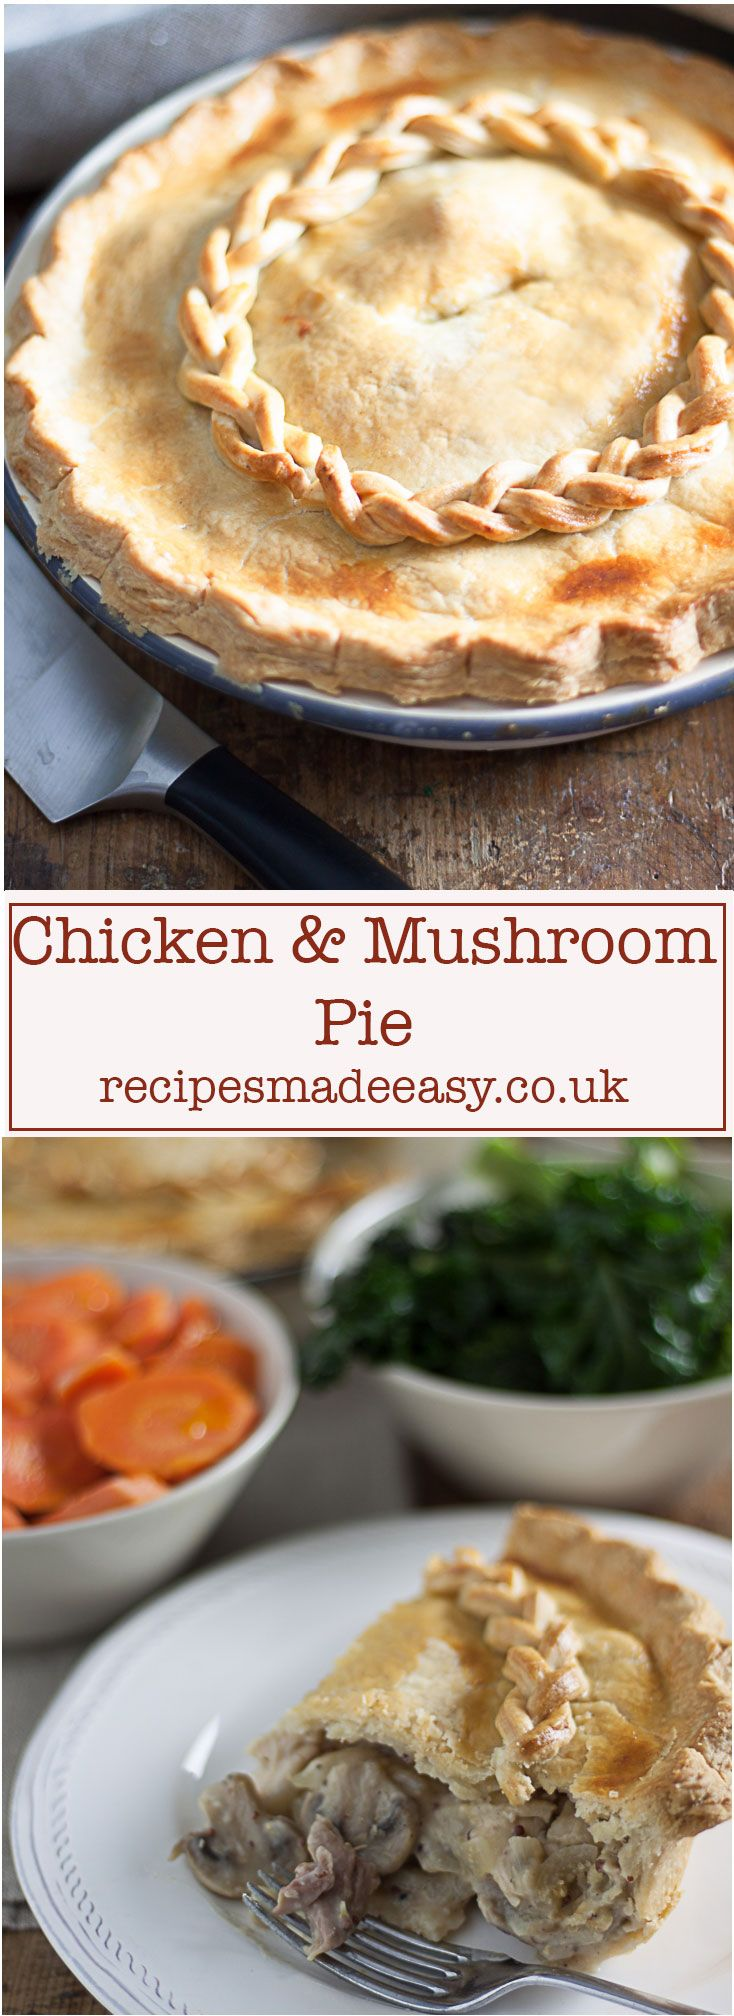 This deep filled Chicken and Mushroom pie is quick to make and uses up leftover cooked chicken.  It makes a great family meal. via @jacdotbee